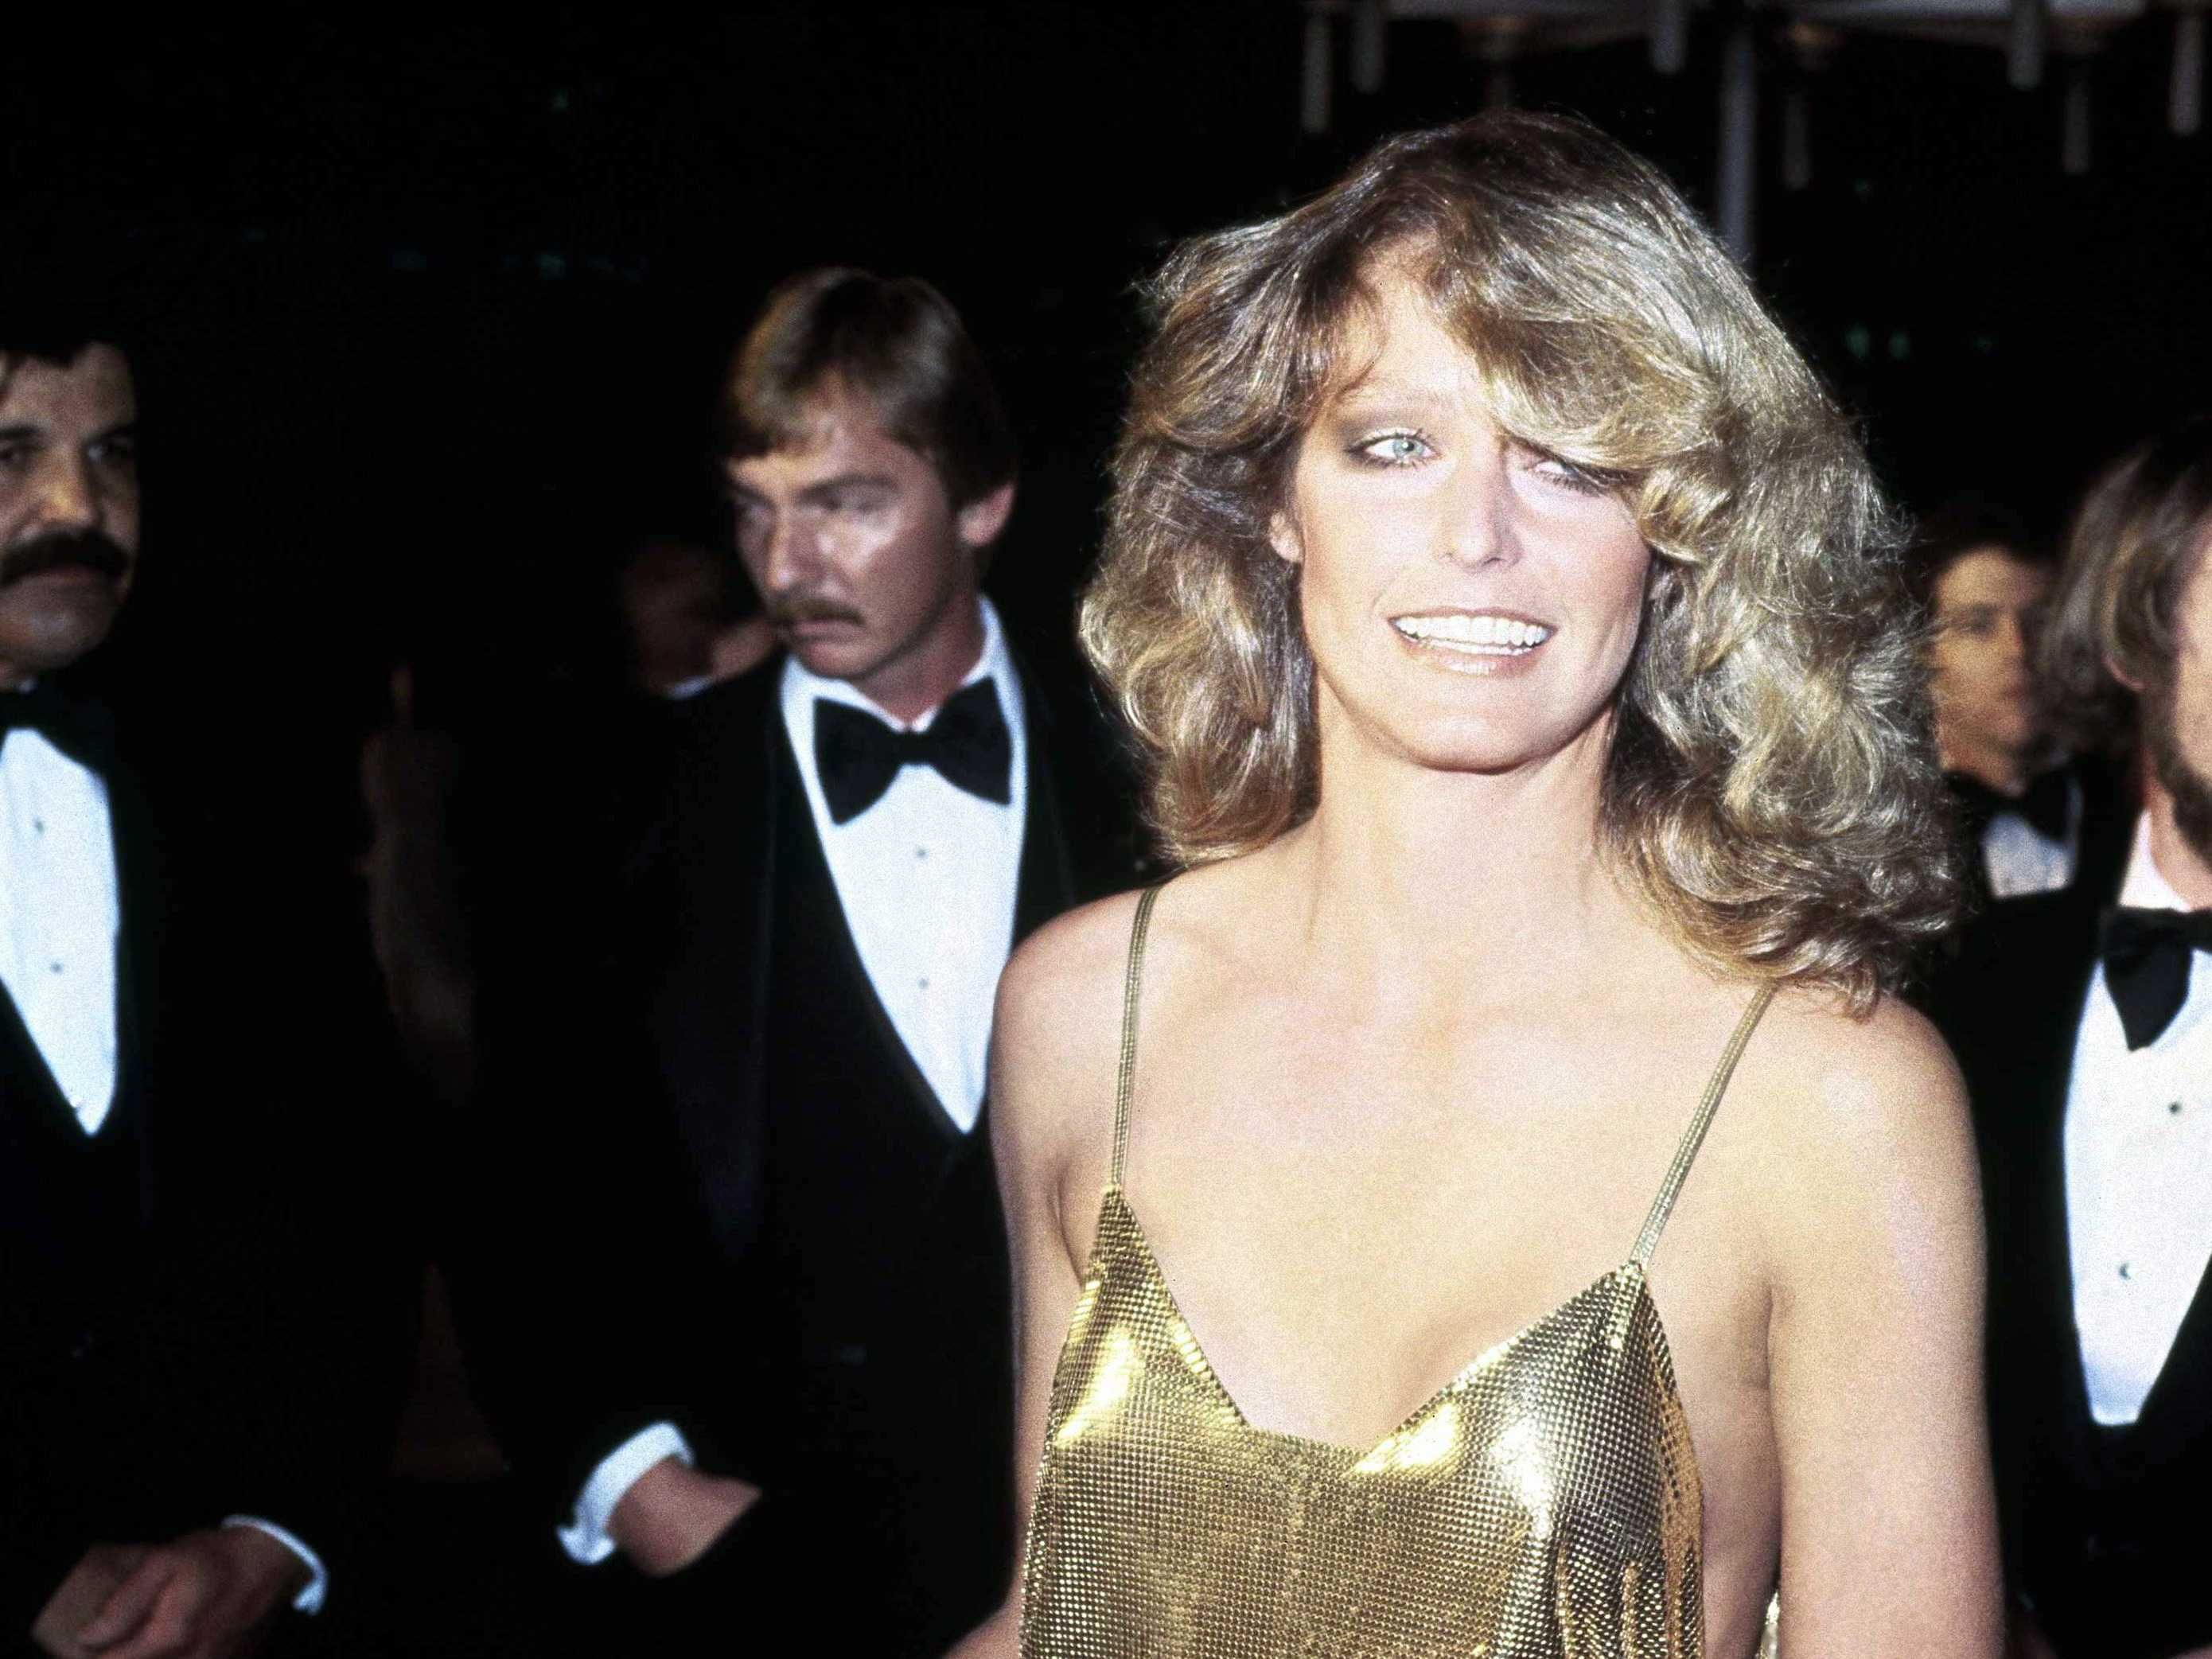 FARRAH FAWCETT presenter at the 50th Academy Awards; April 3, 1978.